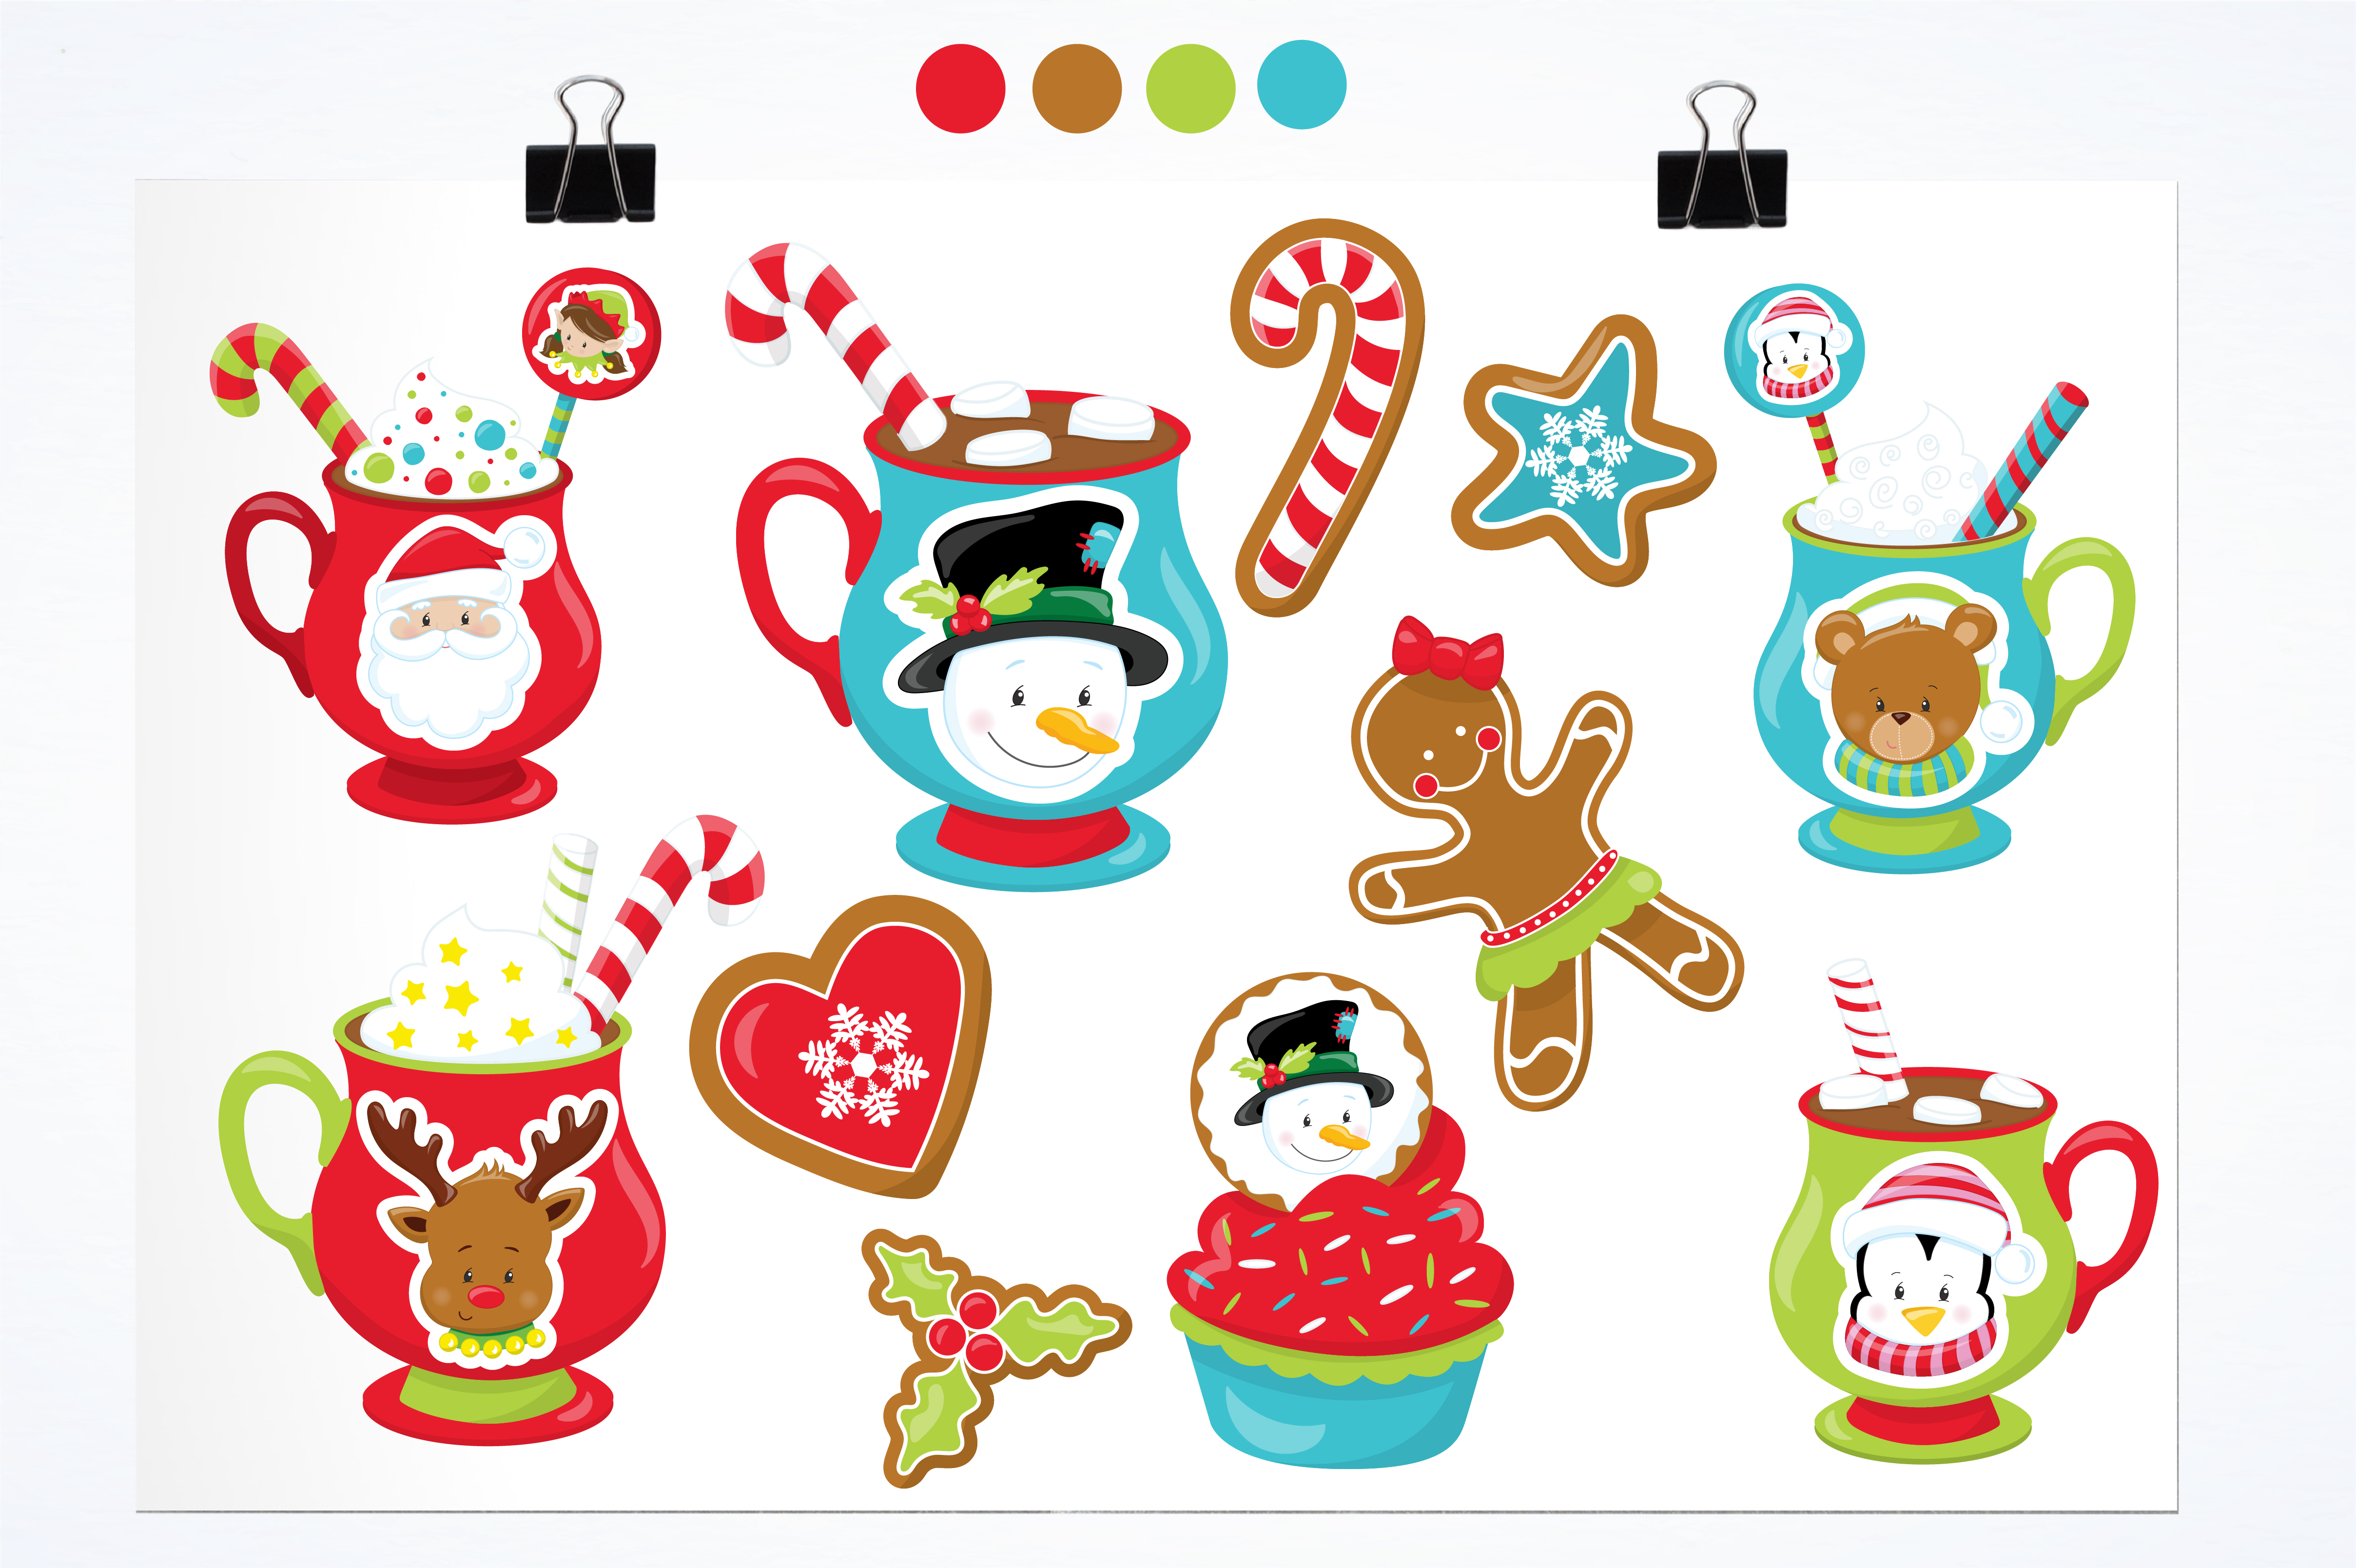 Download Free Cocoa Cookies Graphic By Prettygrafik Creative Fabrica for Cricut Explore, Silhouette and other cutting machines.